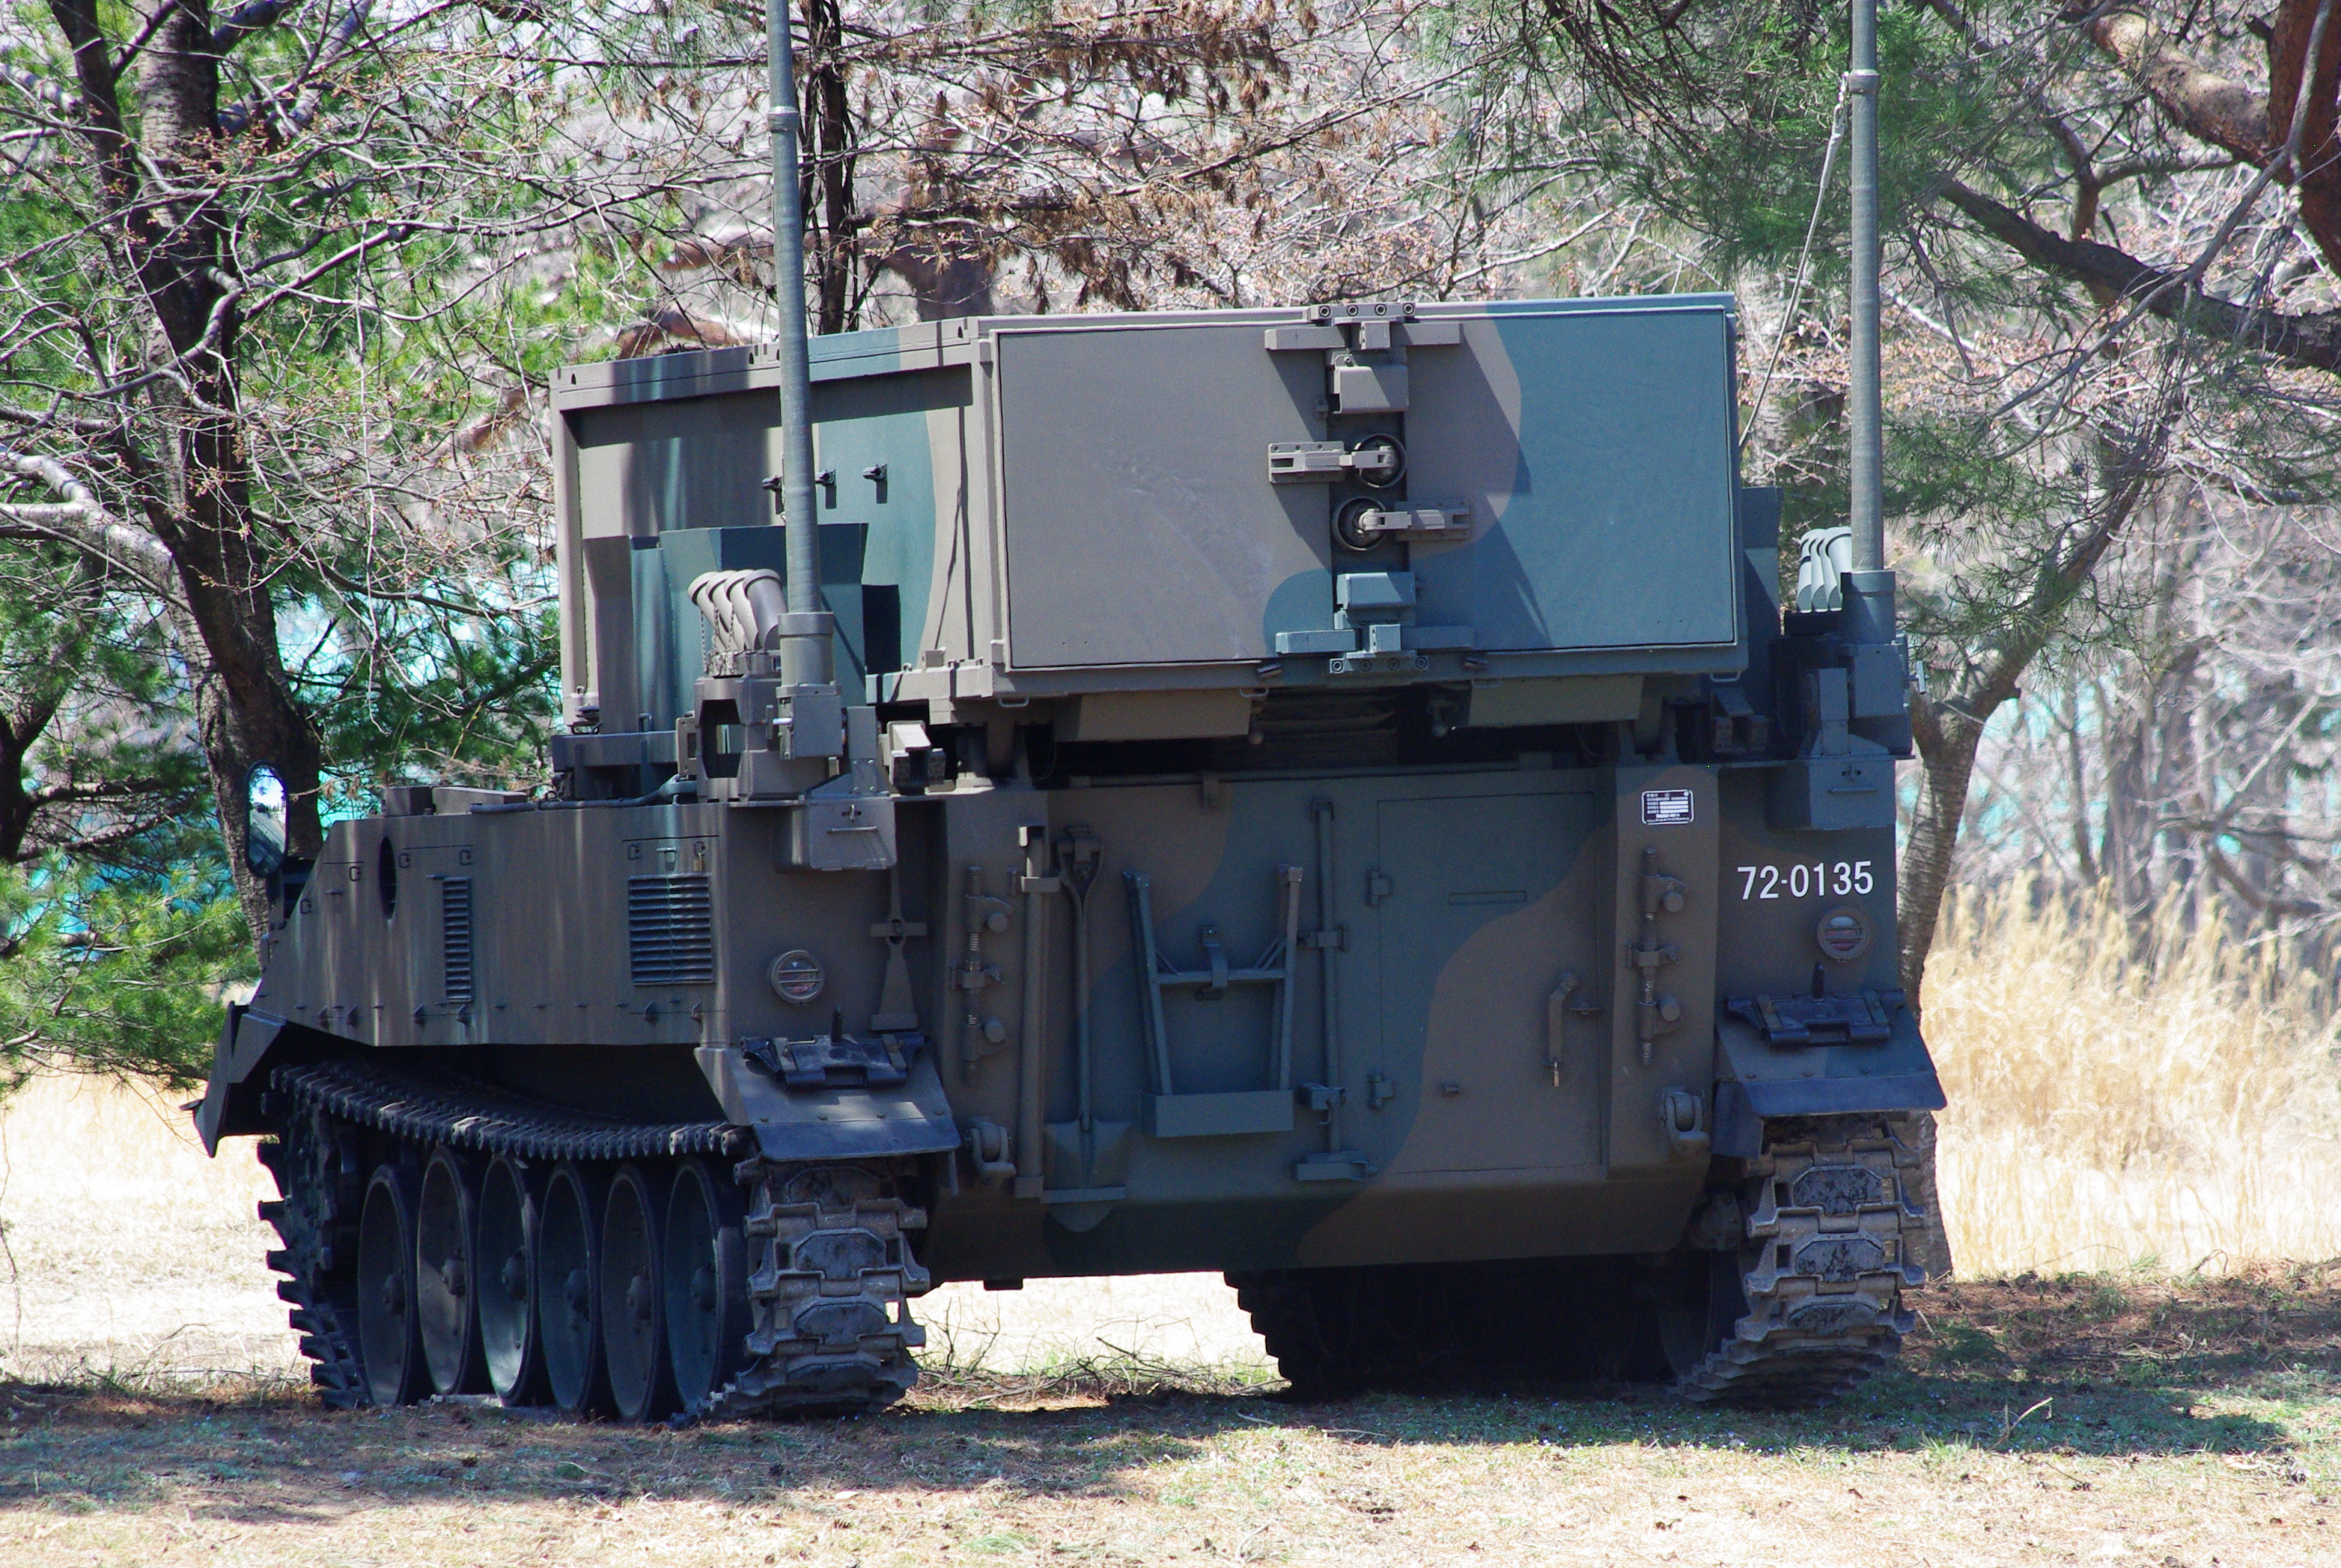 file jgsdf type92 mine clearing vehicle 20120408 04 jpg wikimedia commons. Black Bedroom Furniture Sets. Home Design Ideas